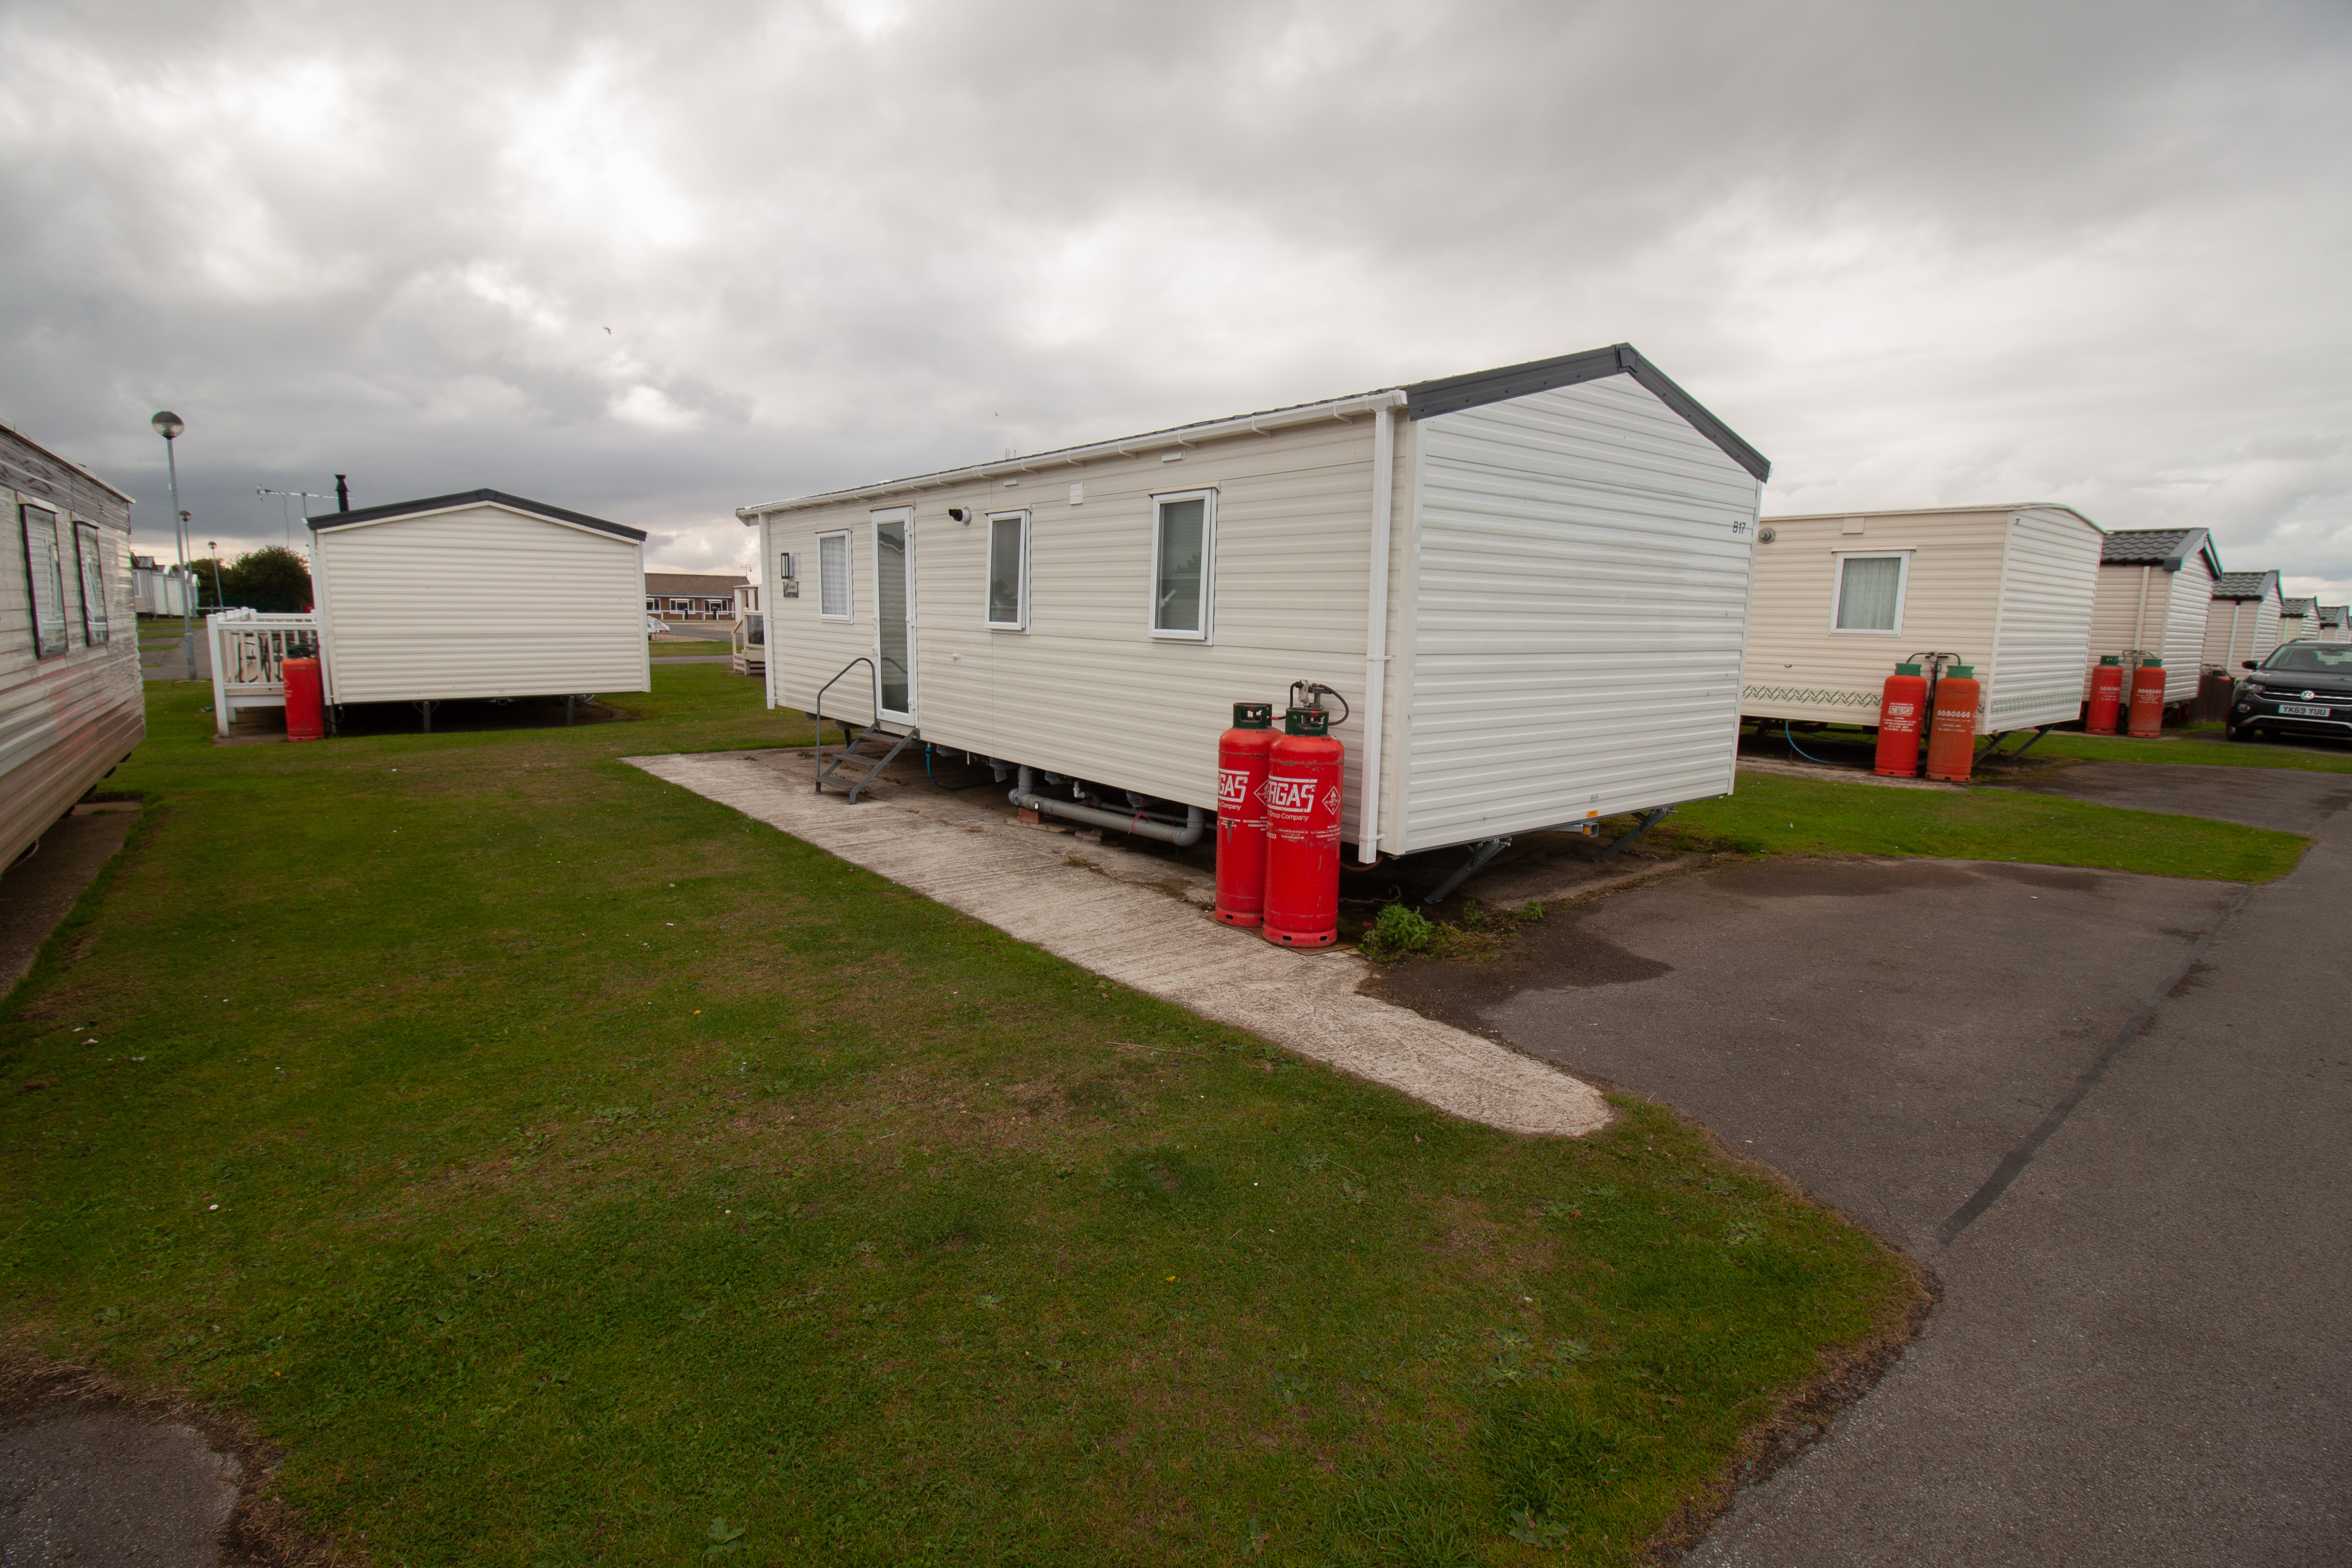 2019 Willerby Skye - Caravan for Sale Filey